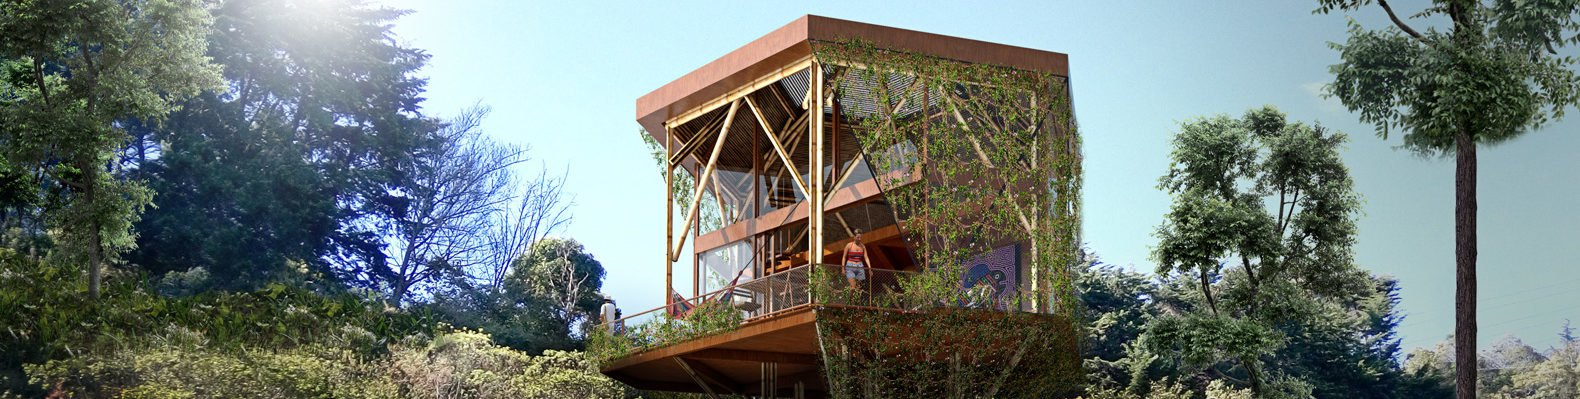 angular bamboo building surrounded by greenery